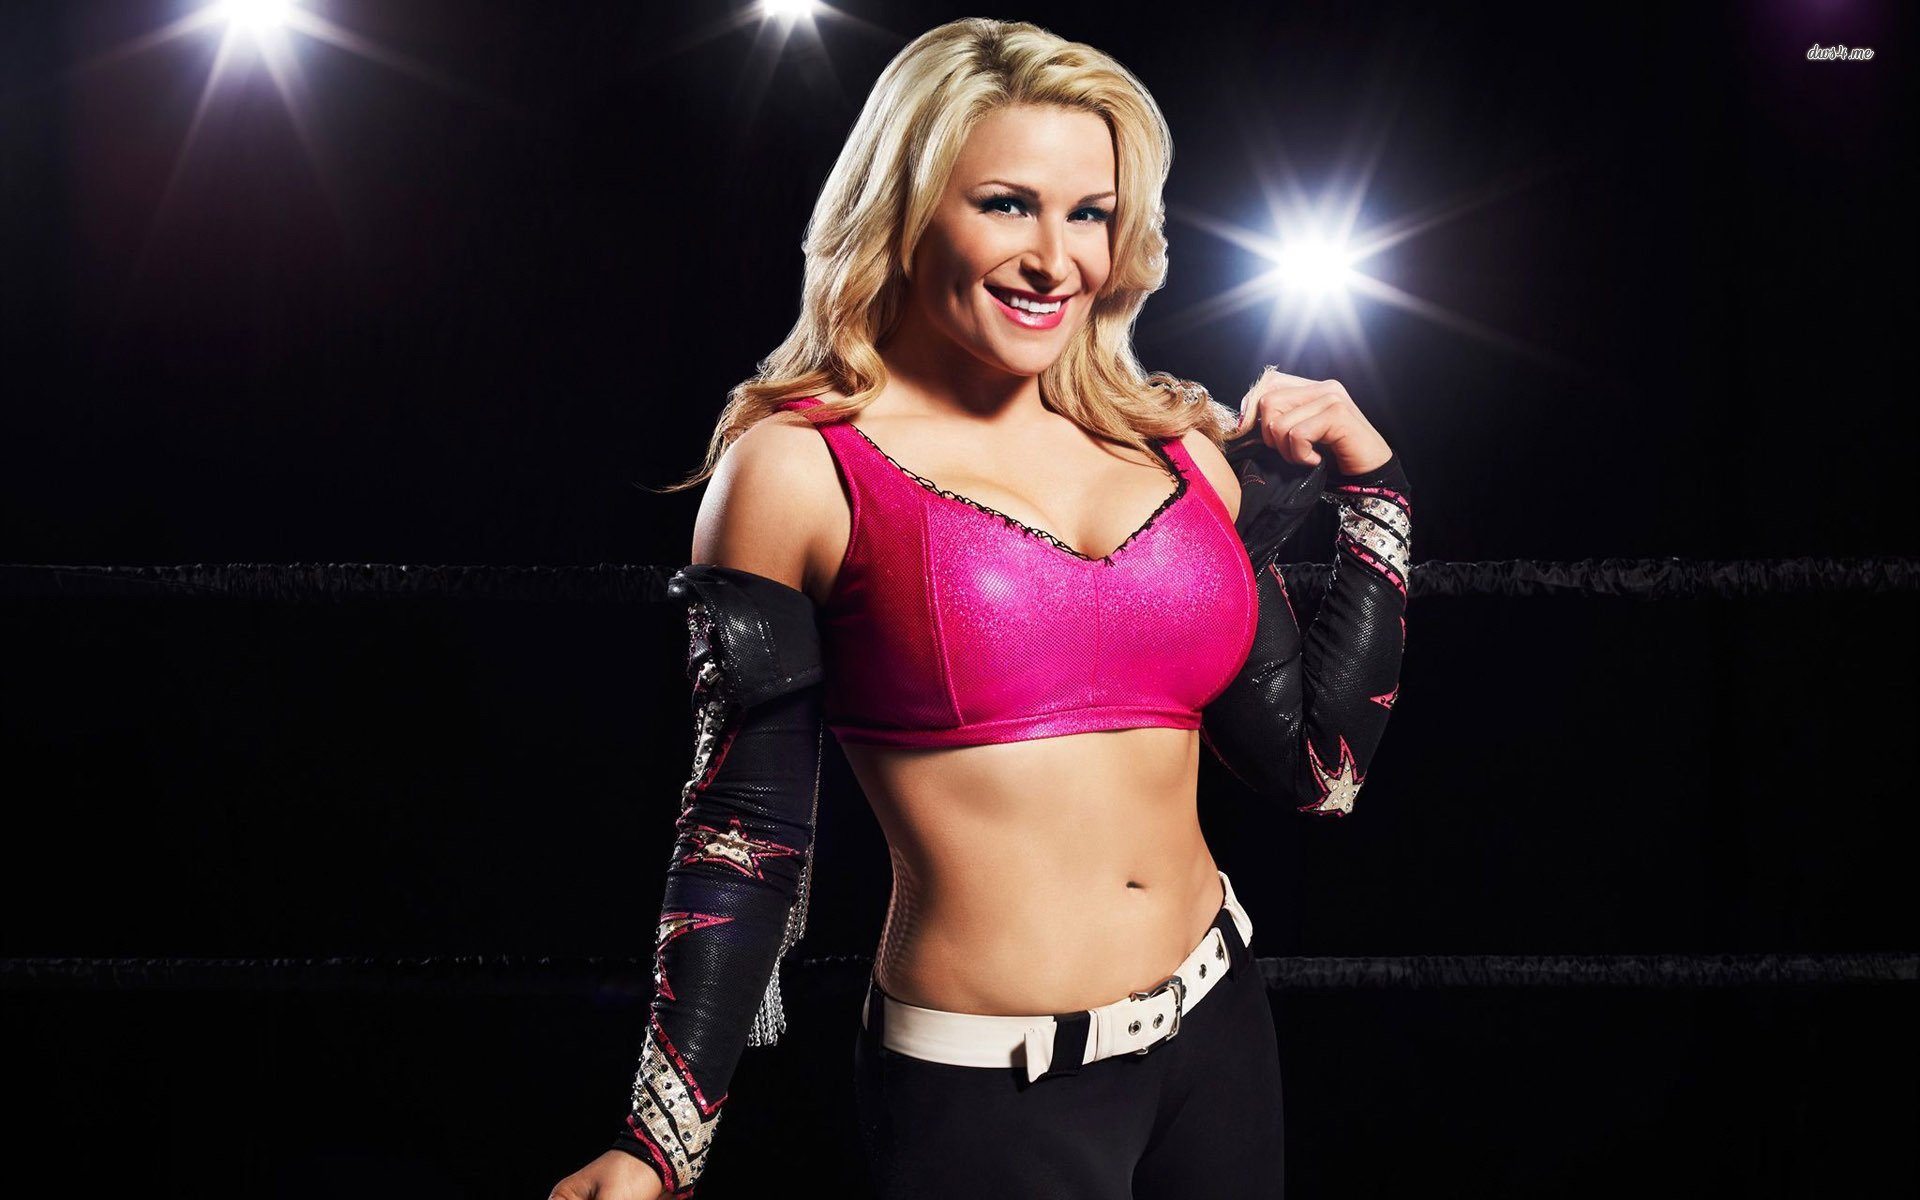 Natalya Neidhart Beautiful